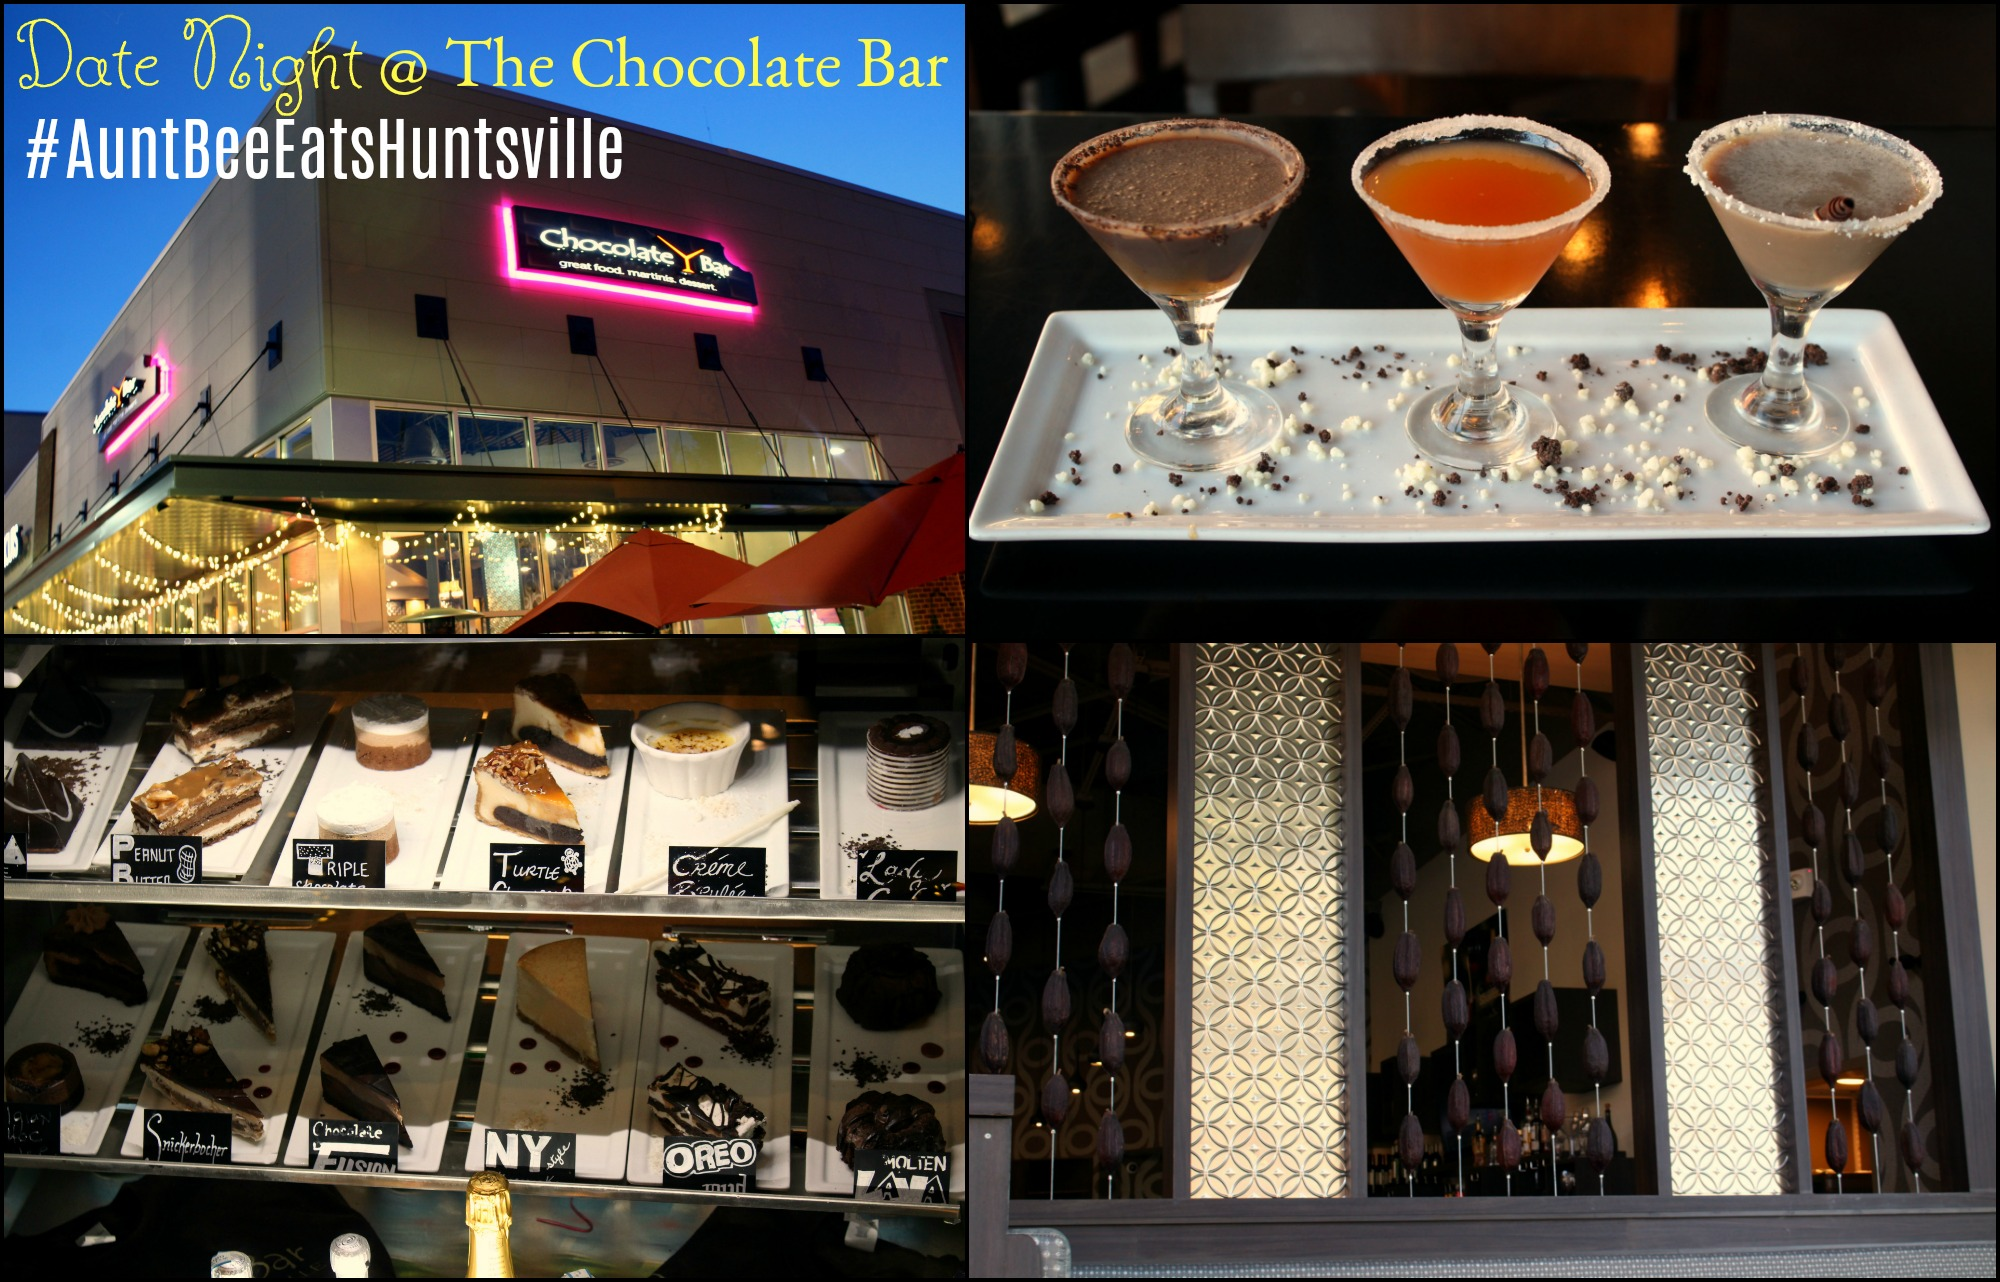 Date Night at The Chocolate Bar